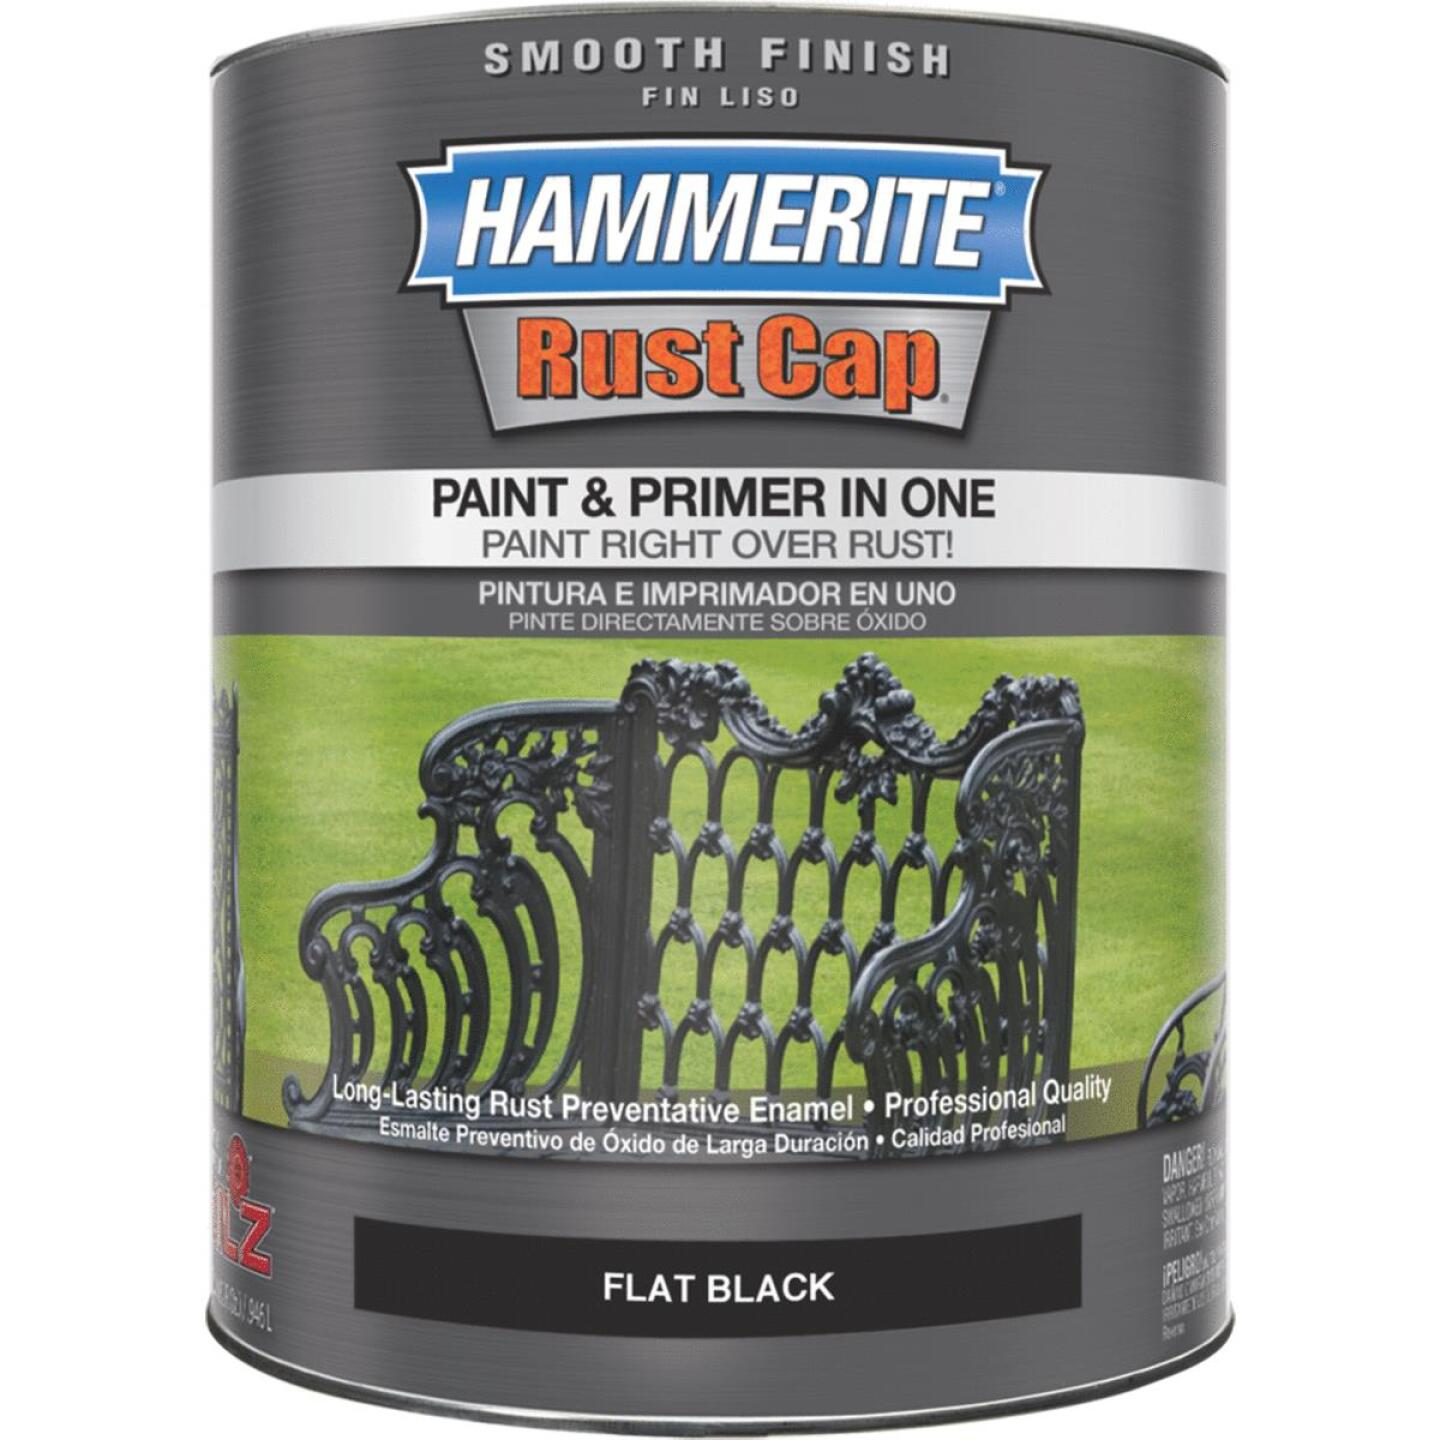 Hammerite Rust Cap Oil-Based Flat Smooth Rust Control Enamel, Black, 1 Qt. Image 1